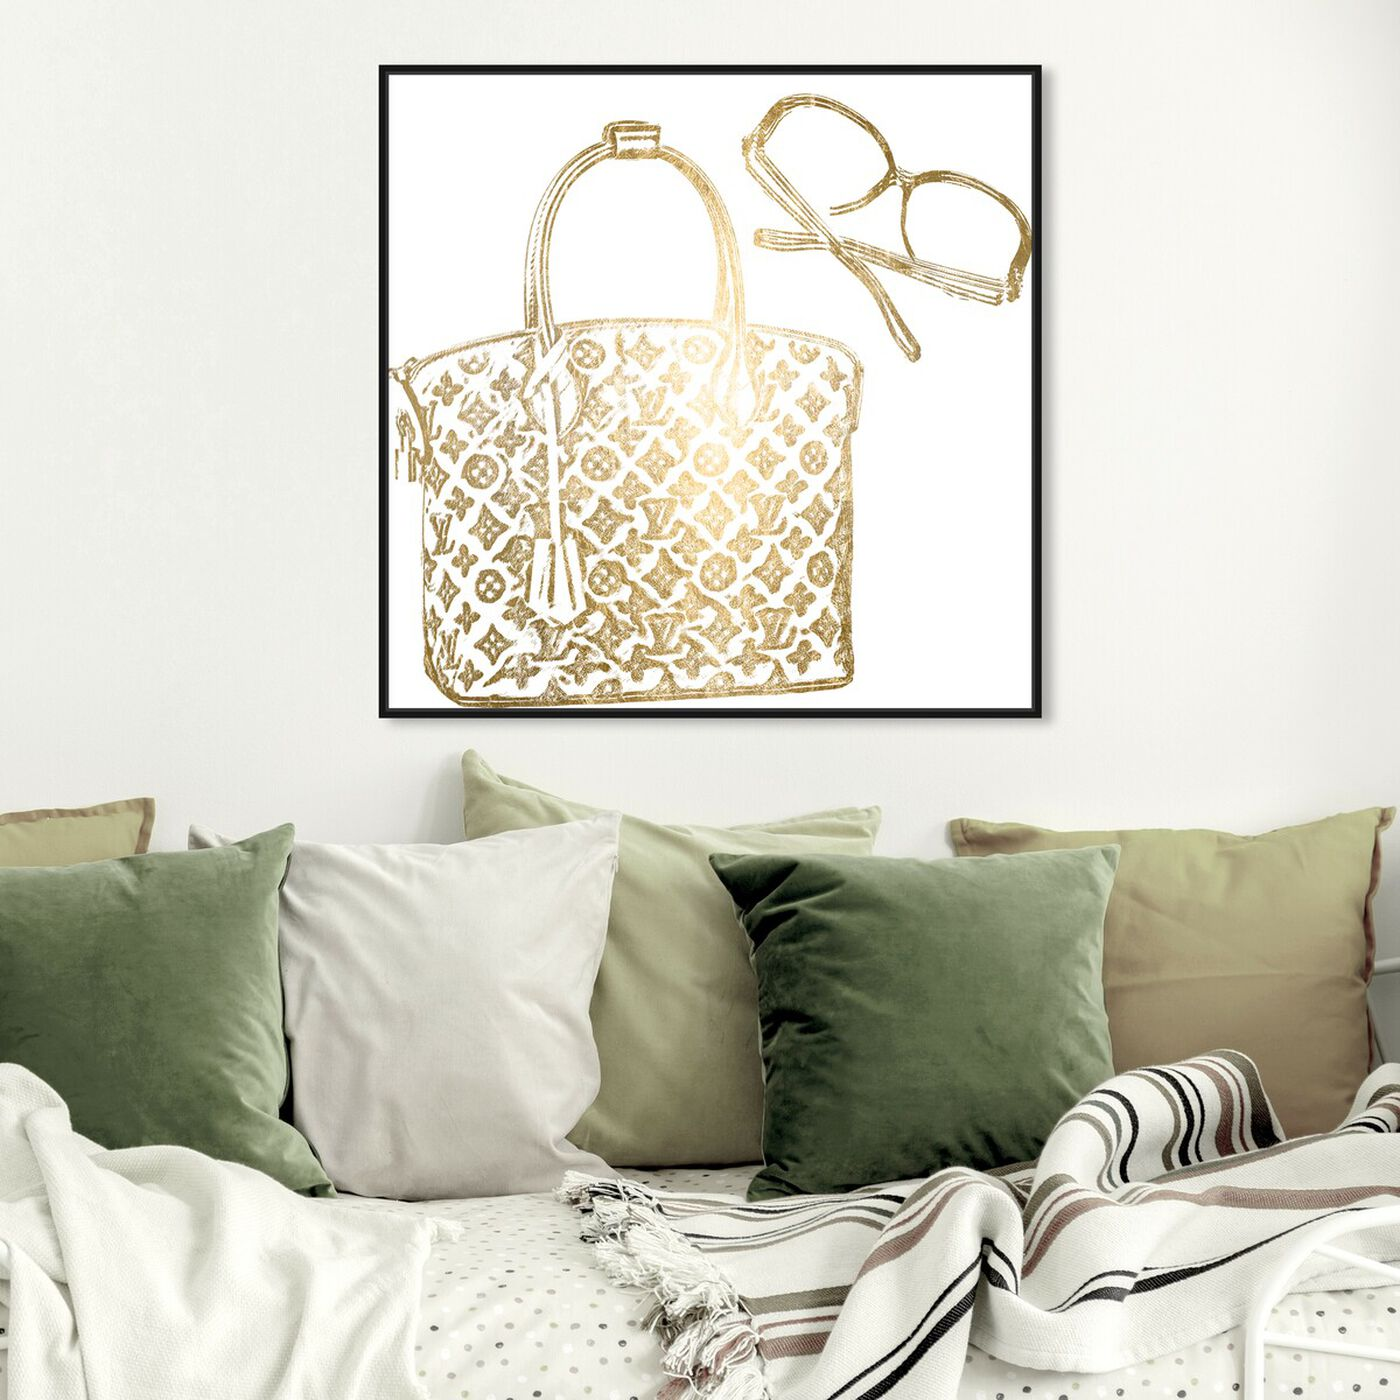 Hanging view of Luxe Musts Gold Foil featuring fashion and glam and handbags art.